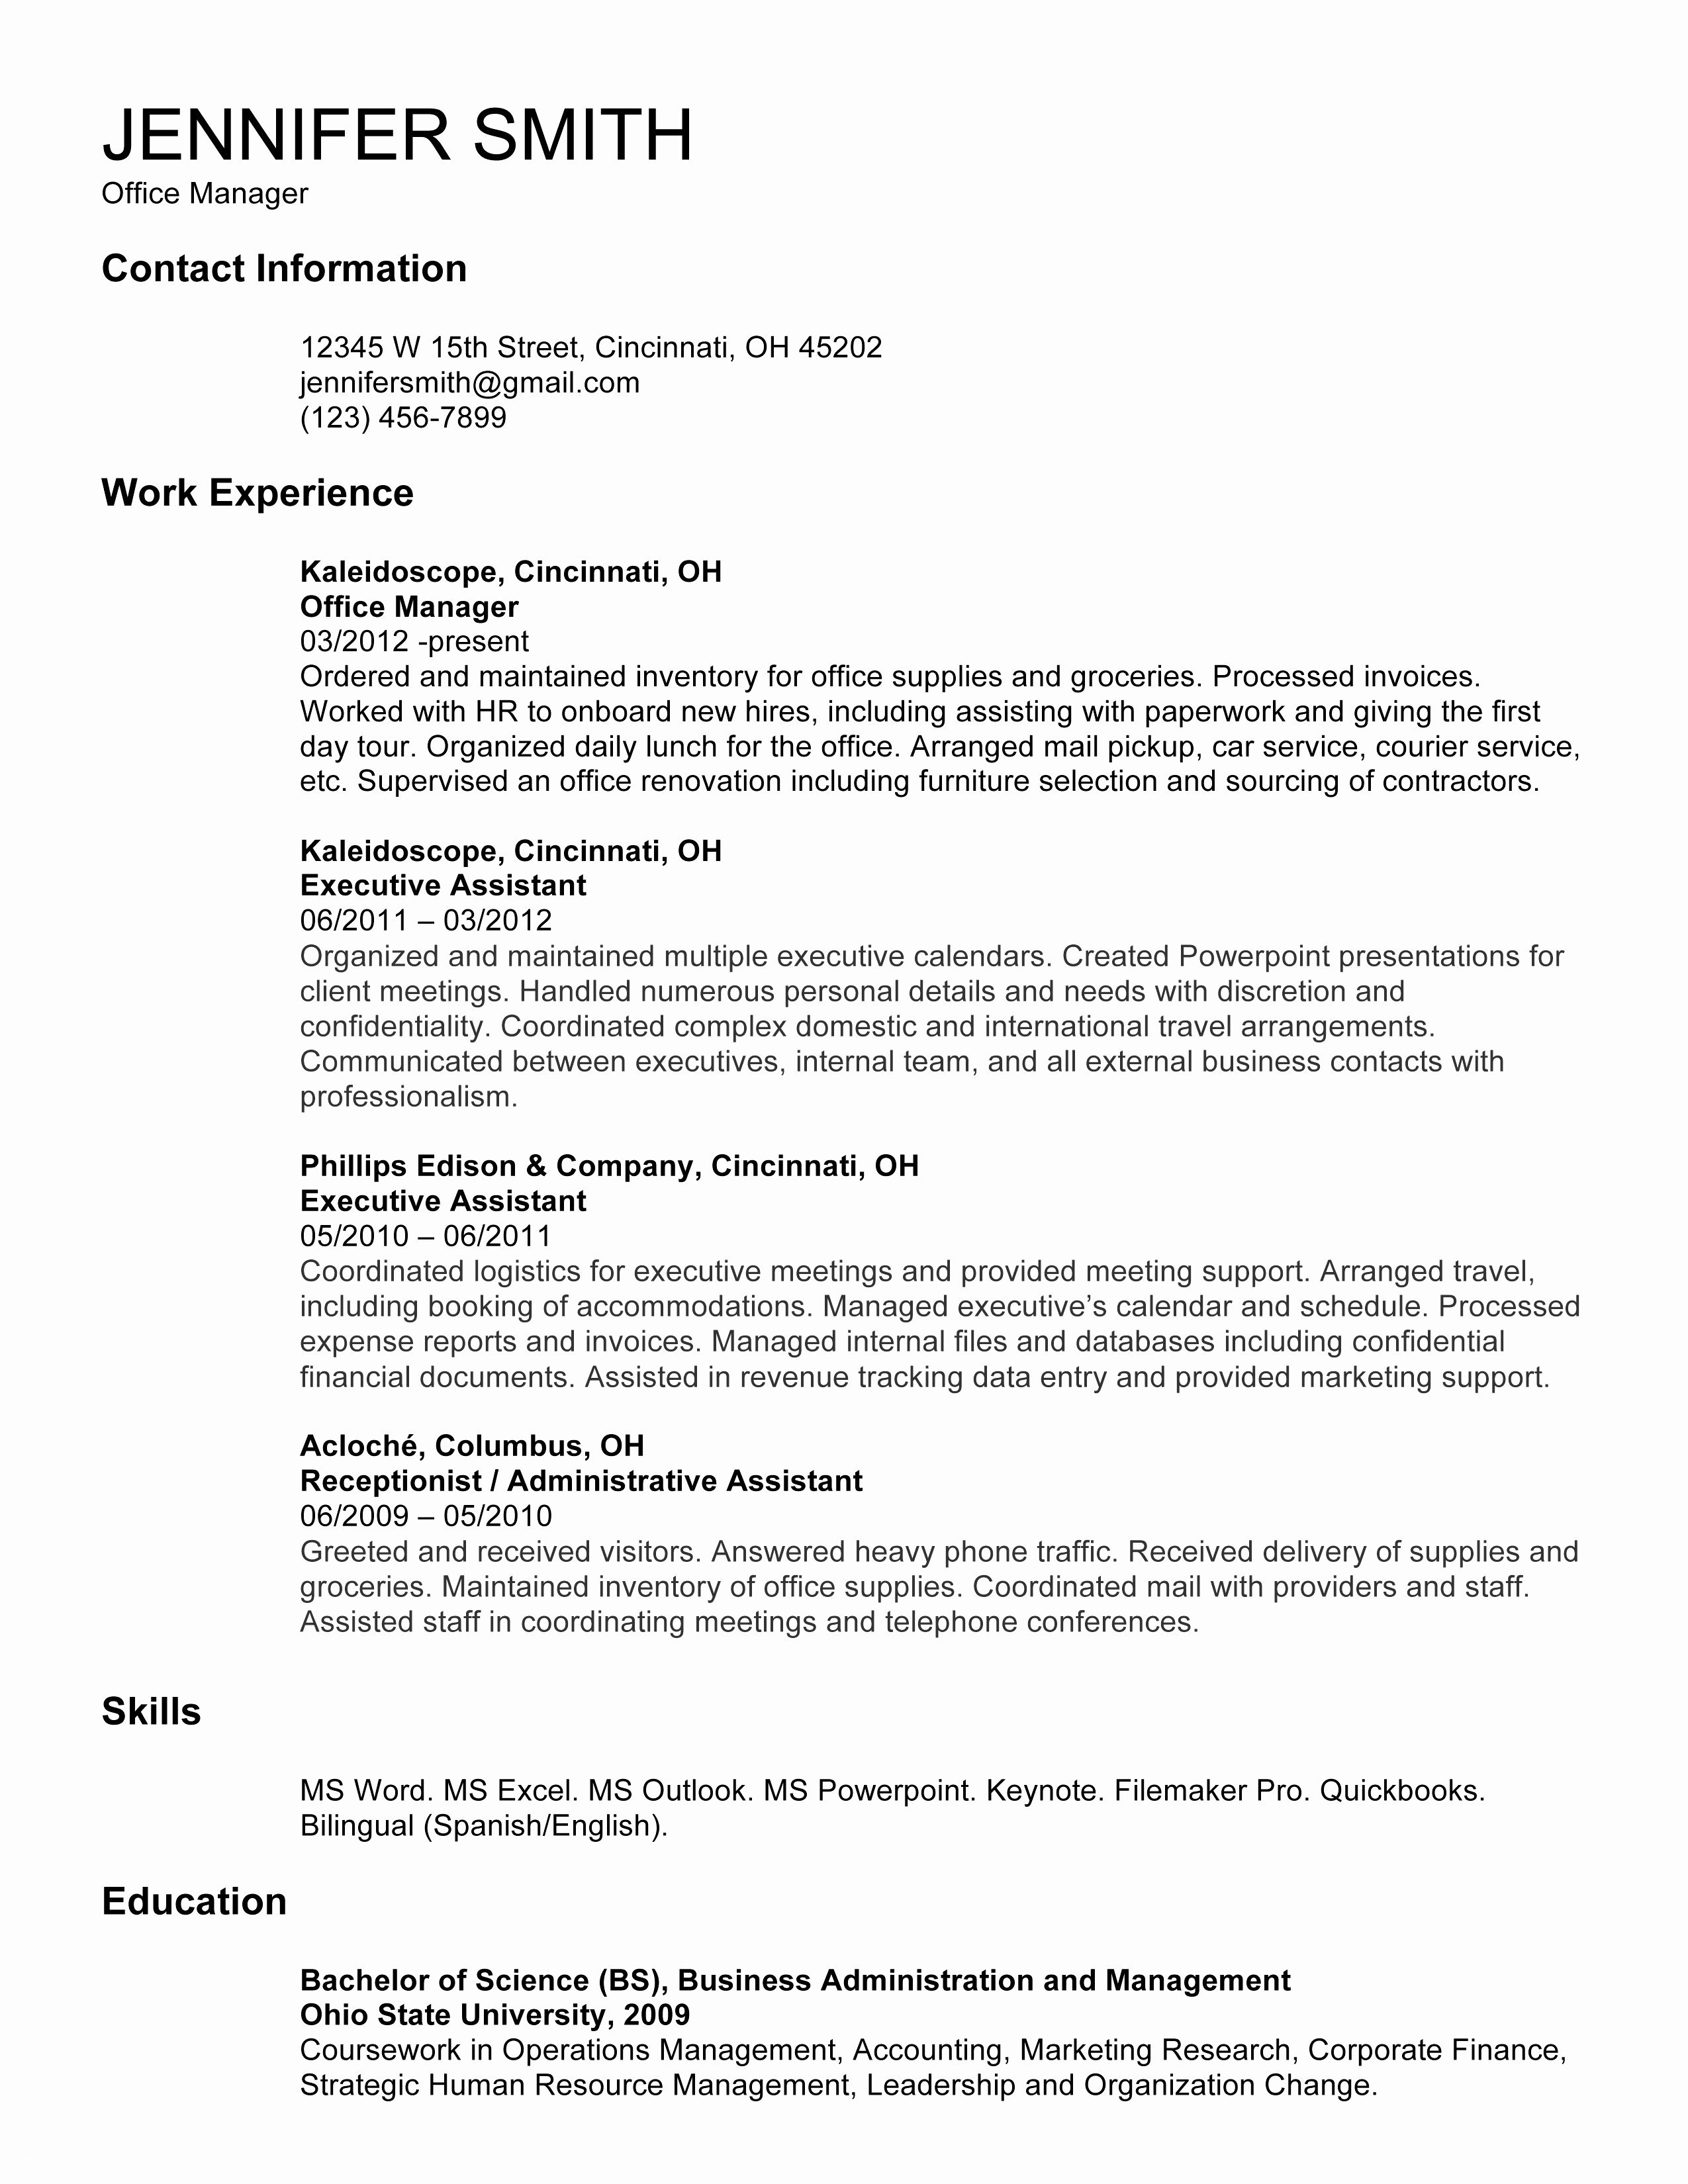 Designer Resume Template - Free Creative Resume Template Elegant Best Pr Resume Template